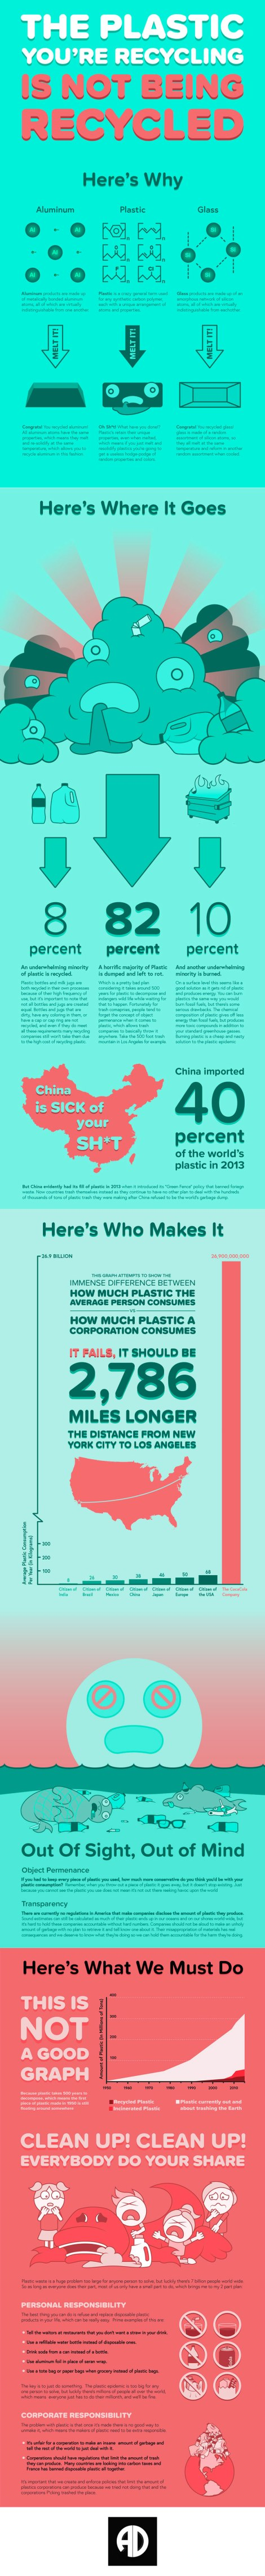 Your Plastic is not being Recycled [Infographic] | ecogreenlove